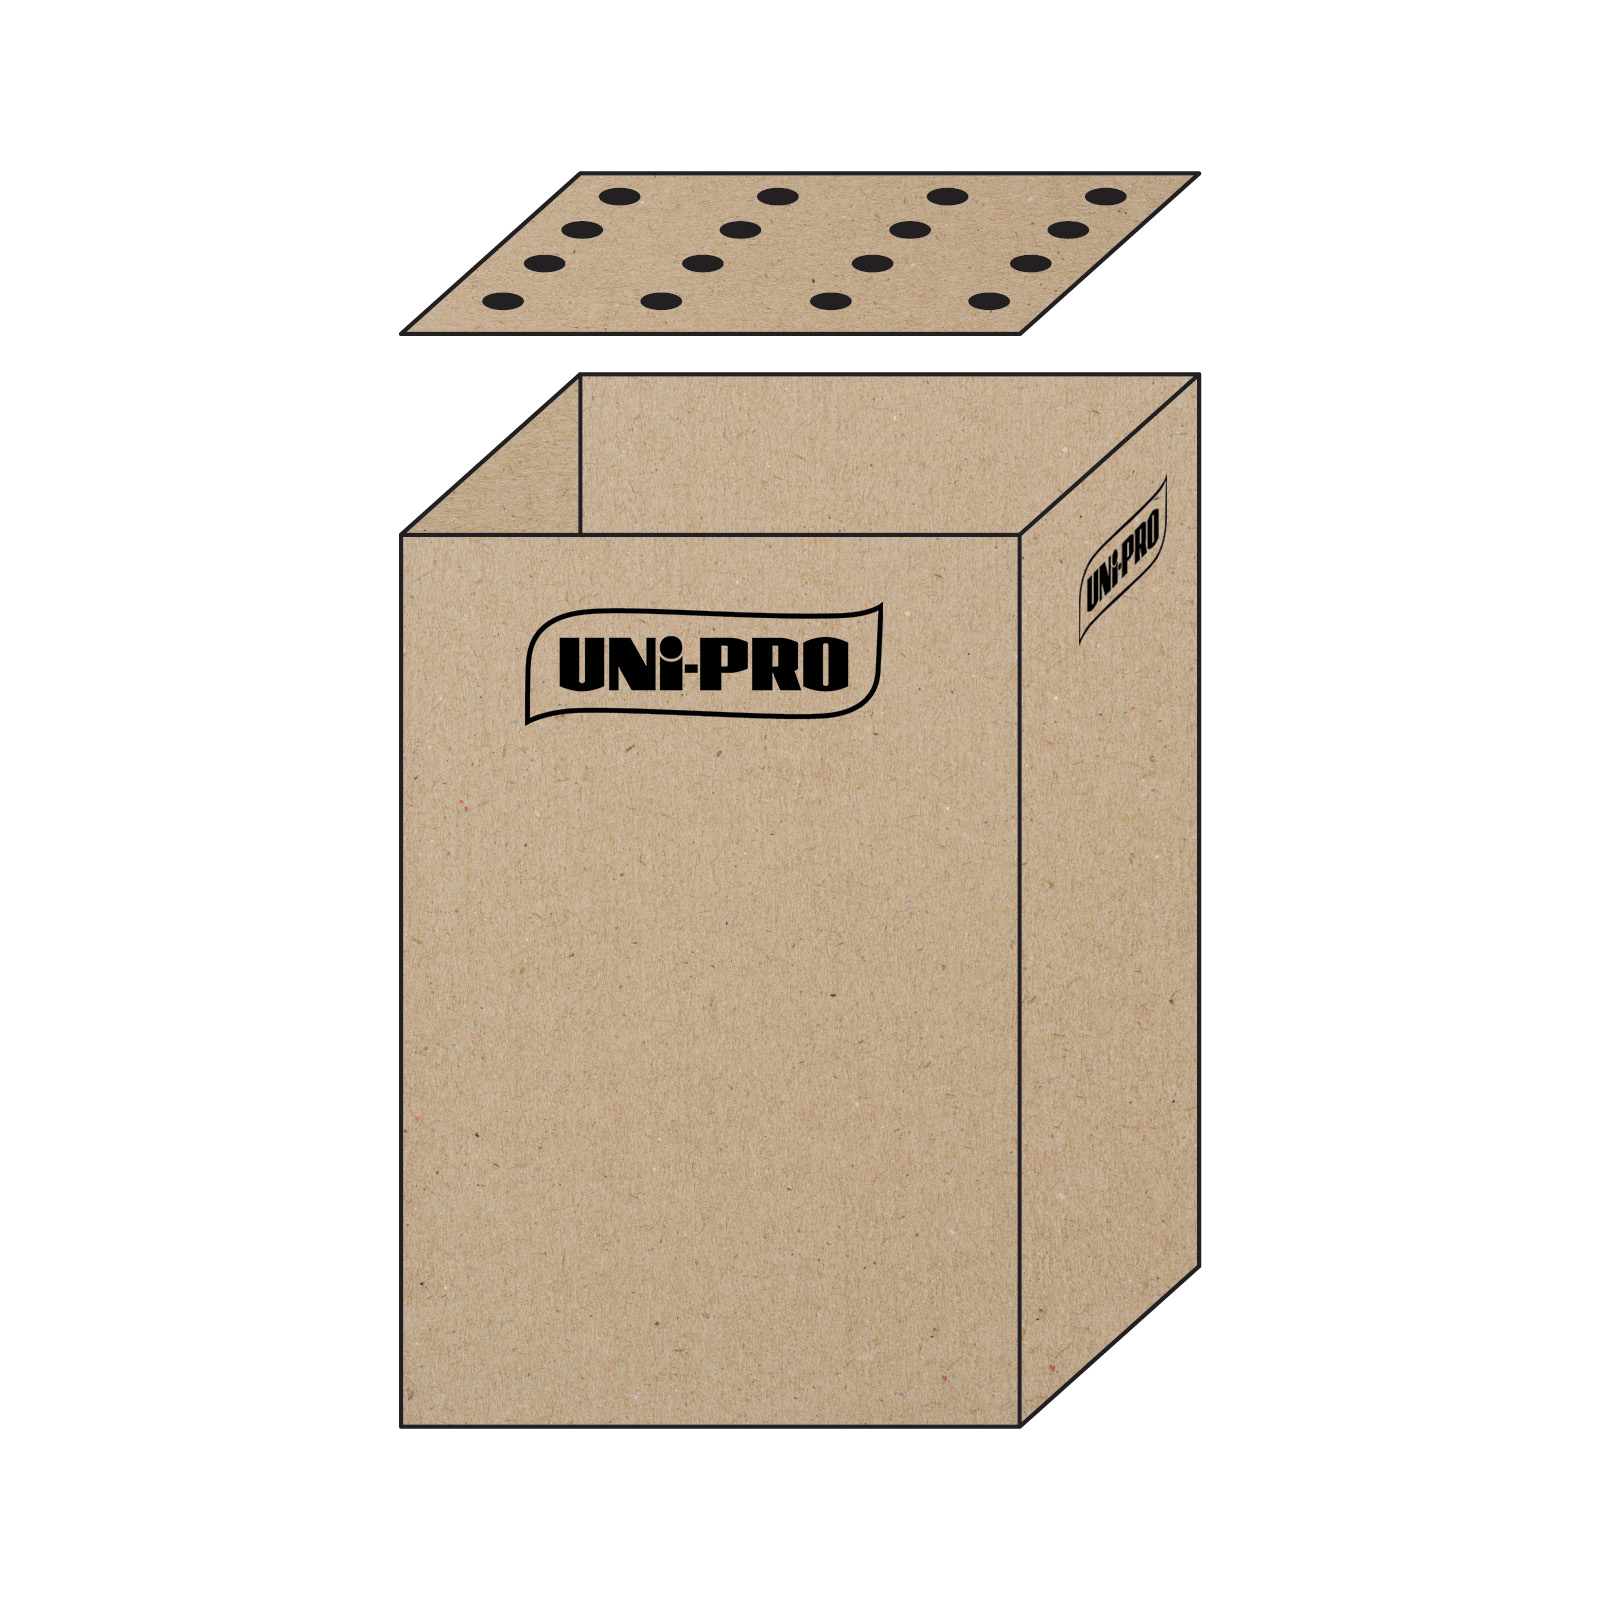 UNi-PRO 2-In-1 Dump Bin and 16 Pole Display Carton